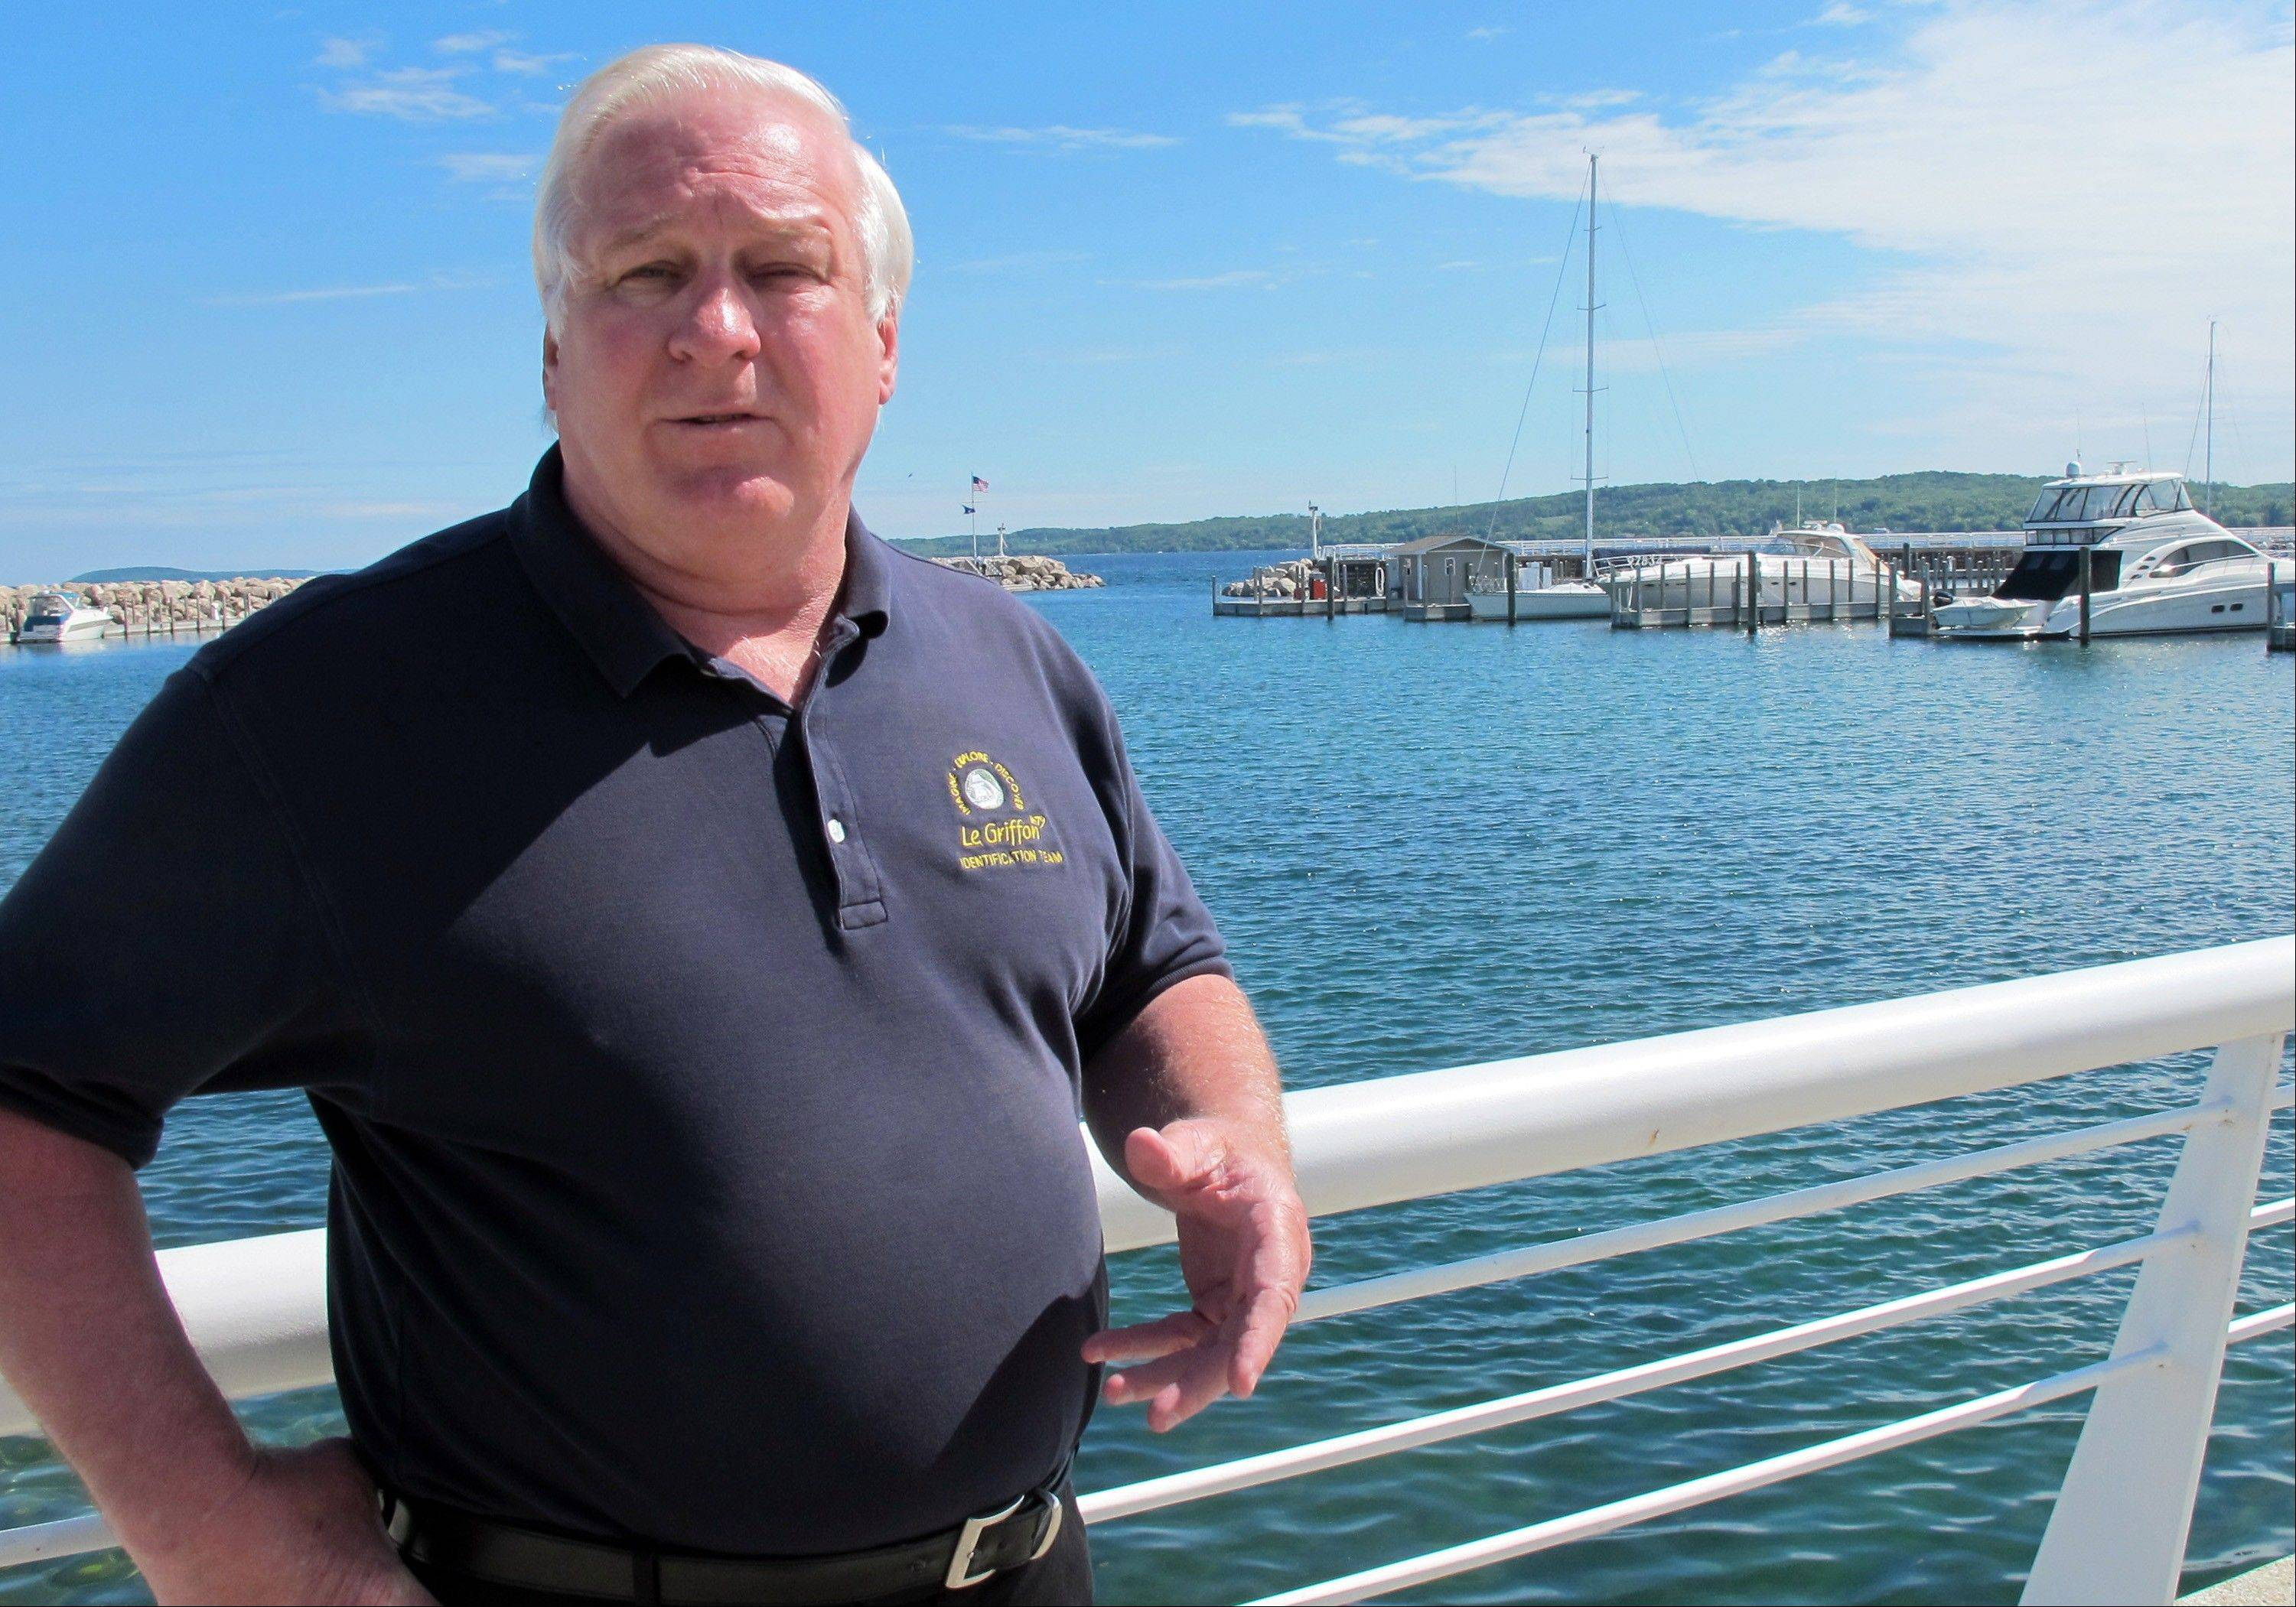 Steve Libert, president of Great Lakes Exploration Group, stands near the Traverse City, Mich., marina on Lake Michigan. On Saturday, Libert will lead a diving expedition to determine whether timbers he found are remains of the legendary Griffin.